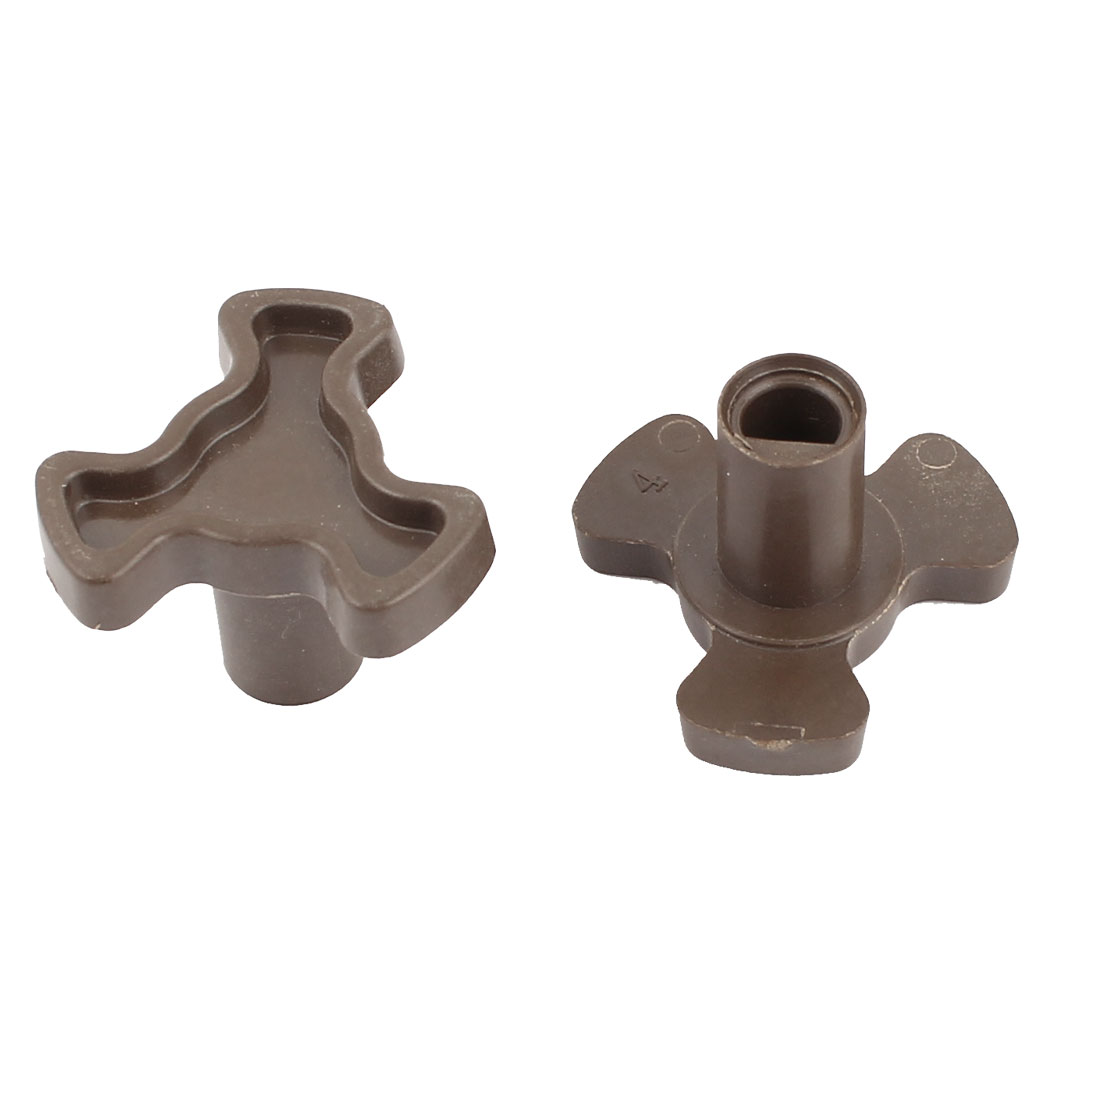 7mm Hole Dia Plastic Microwave Oven Turntable Coupler Coupling Control Knob Brown 2pcs